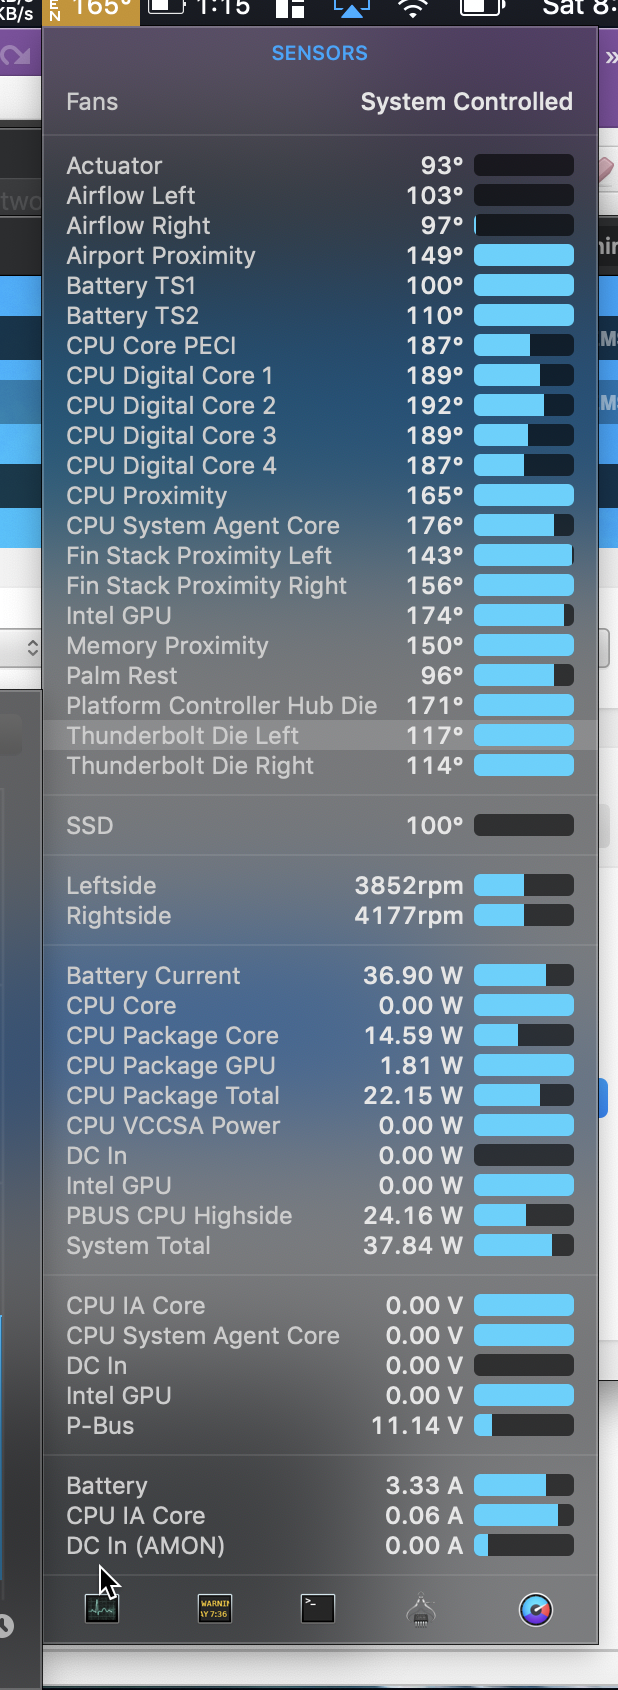 Macbook Pro 2018 overheating, and other s… - Apple Community